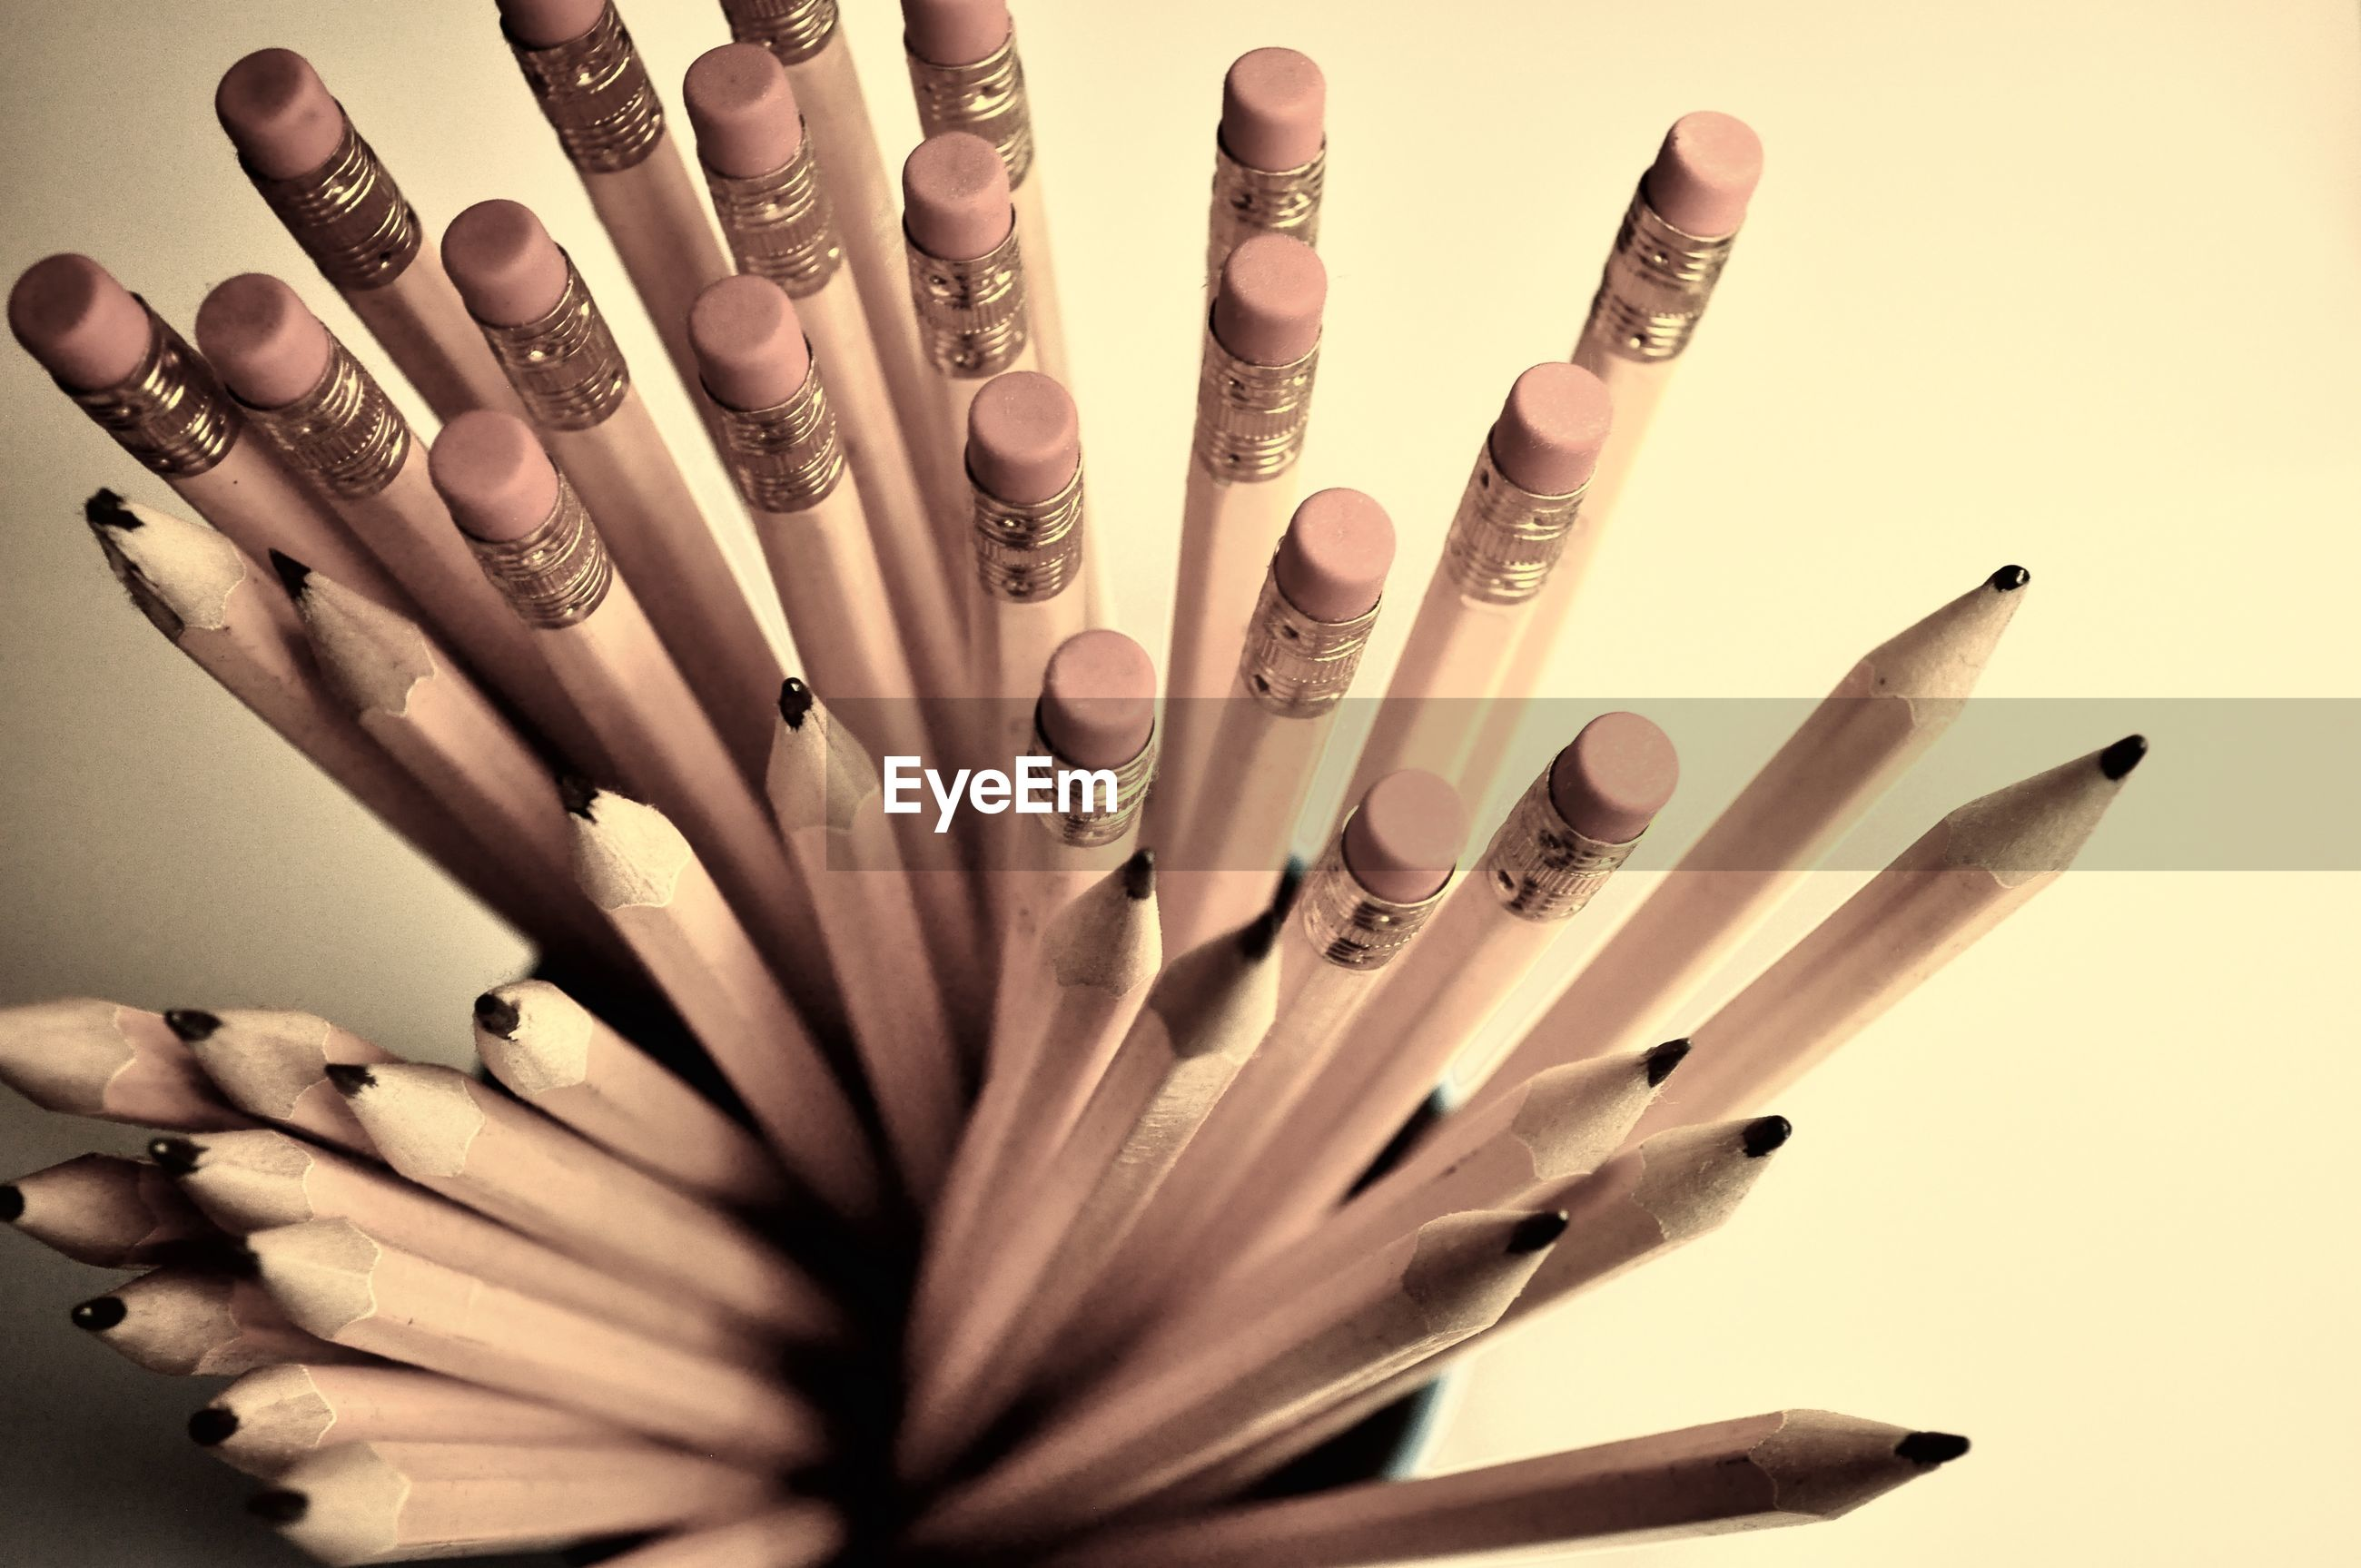 High angle view of pencils in container against beige background